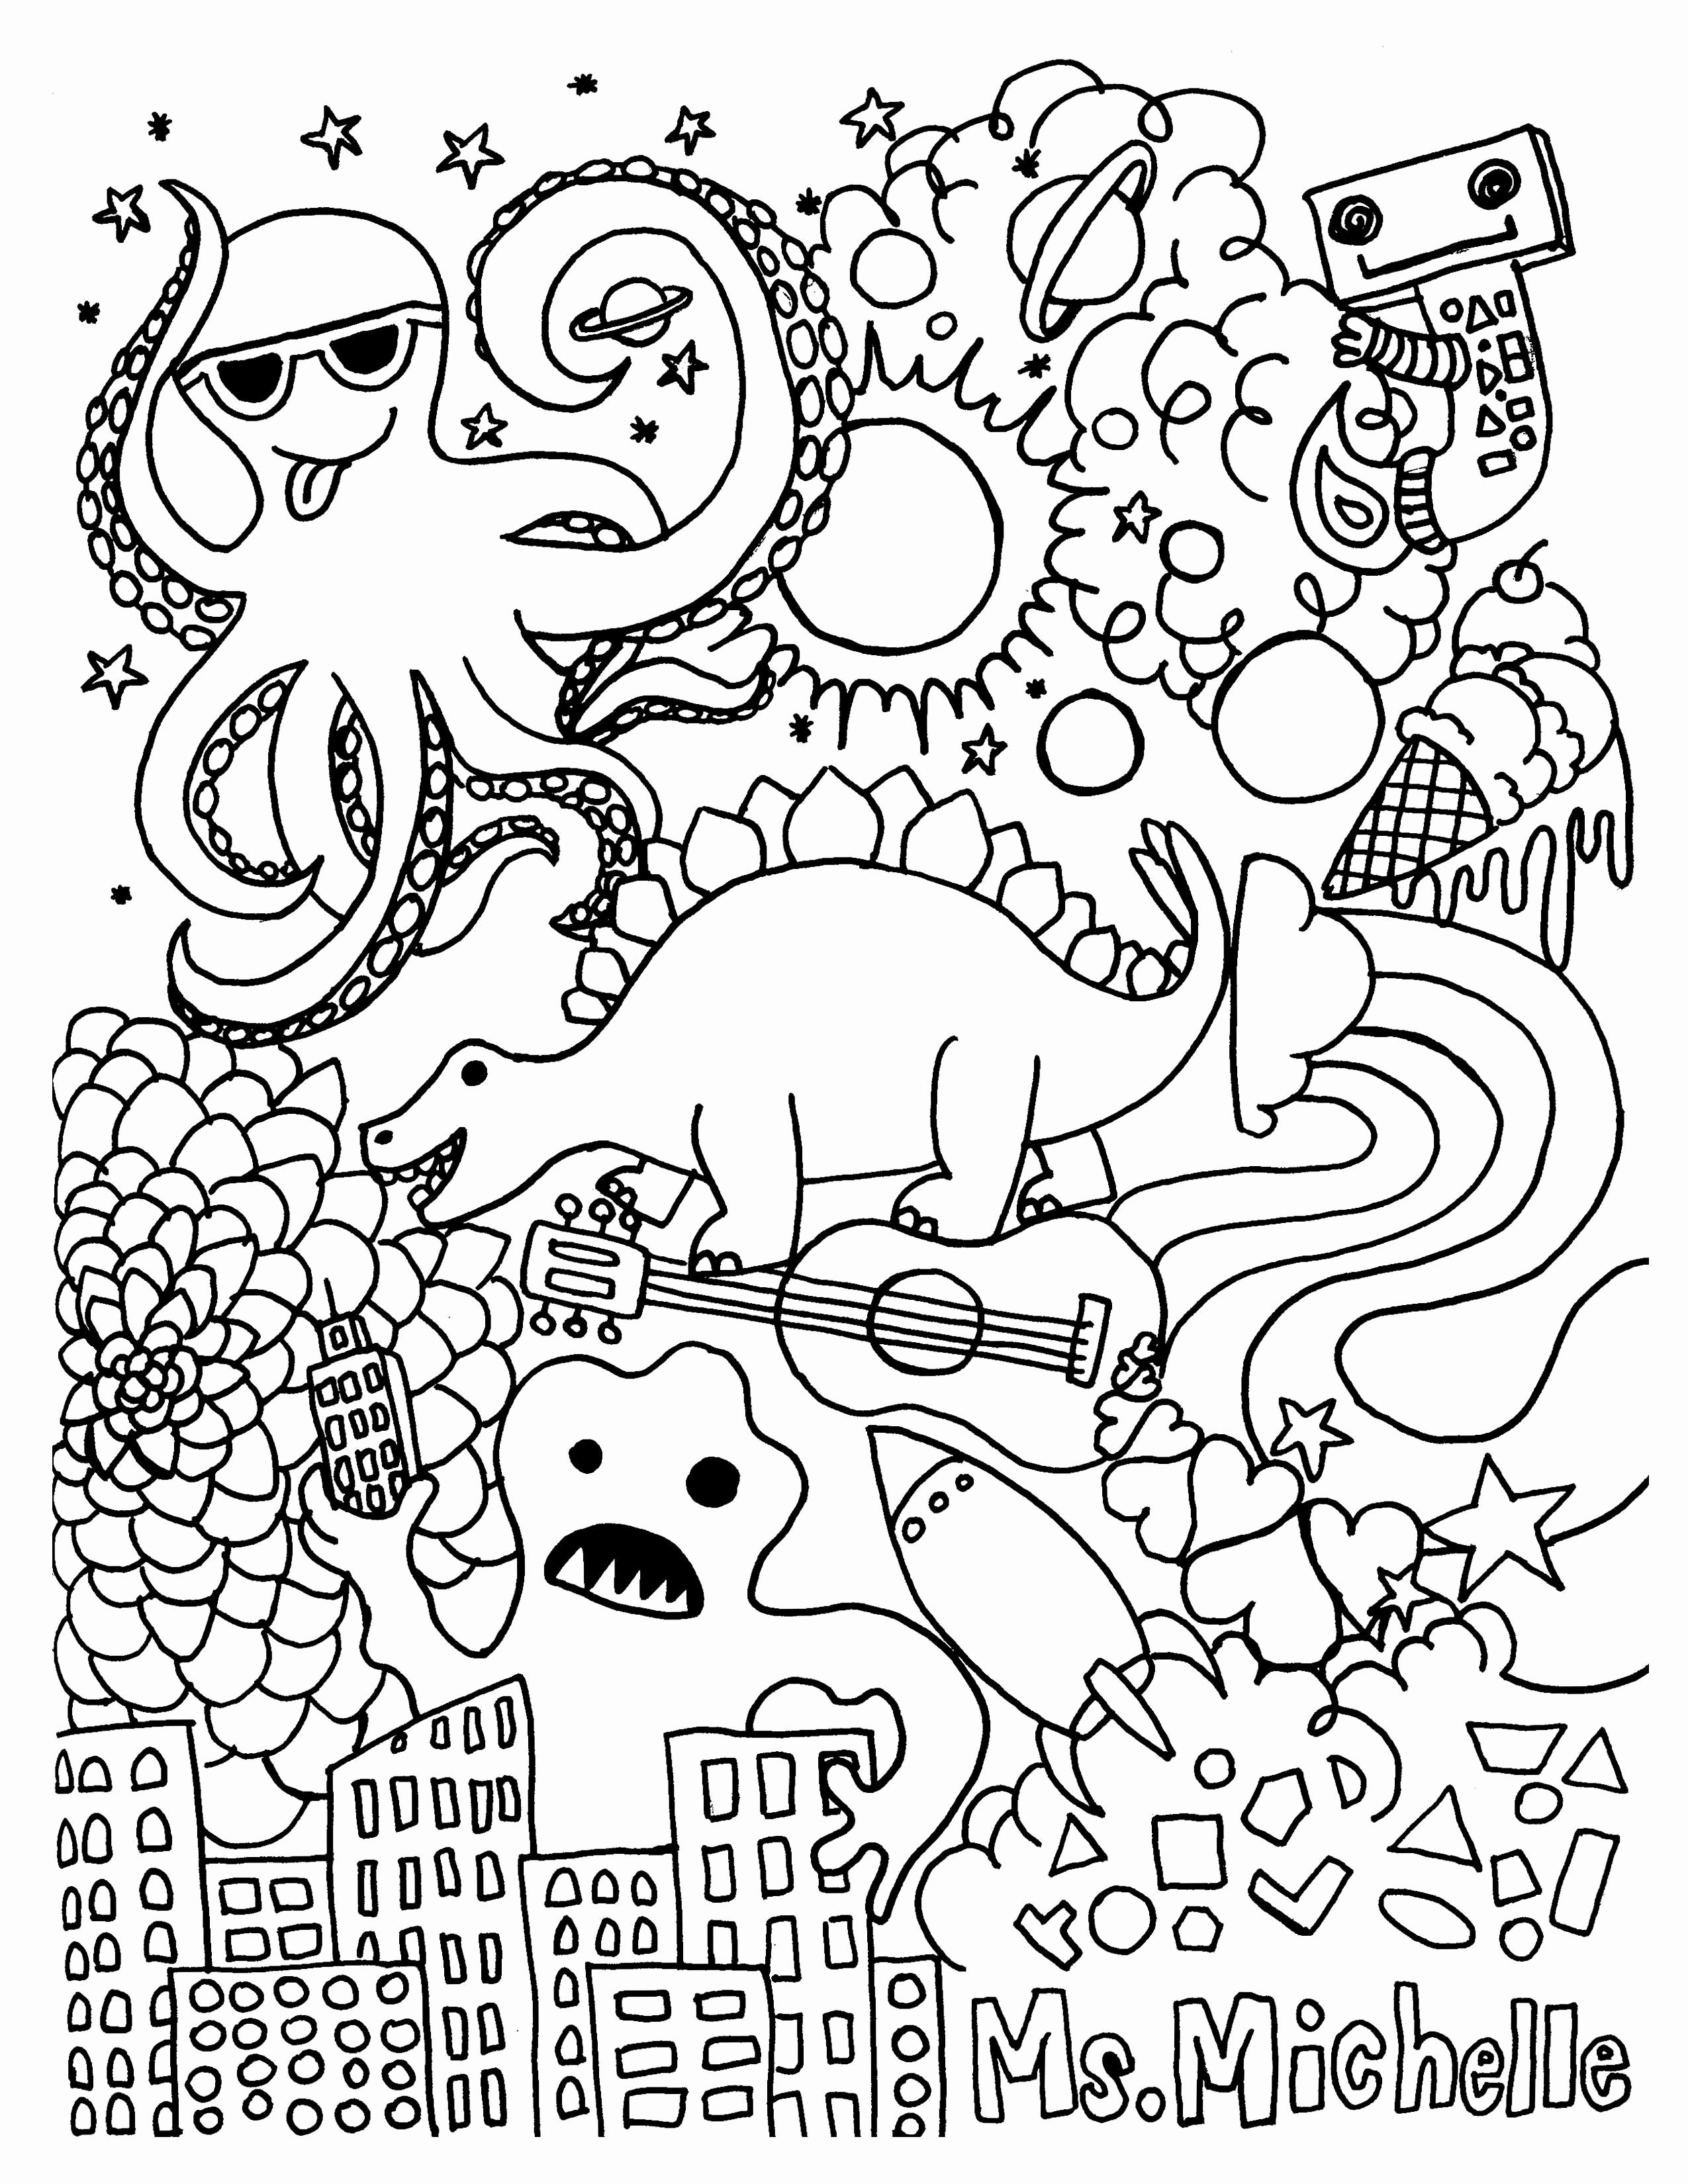 coloring pages for 3rd graders fun coloring pages for 3rd graders coloring home for coloring 3rd graders pages